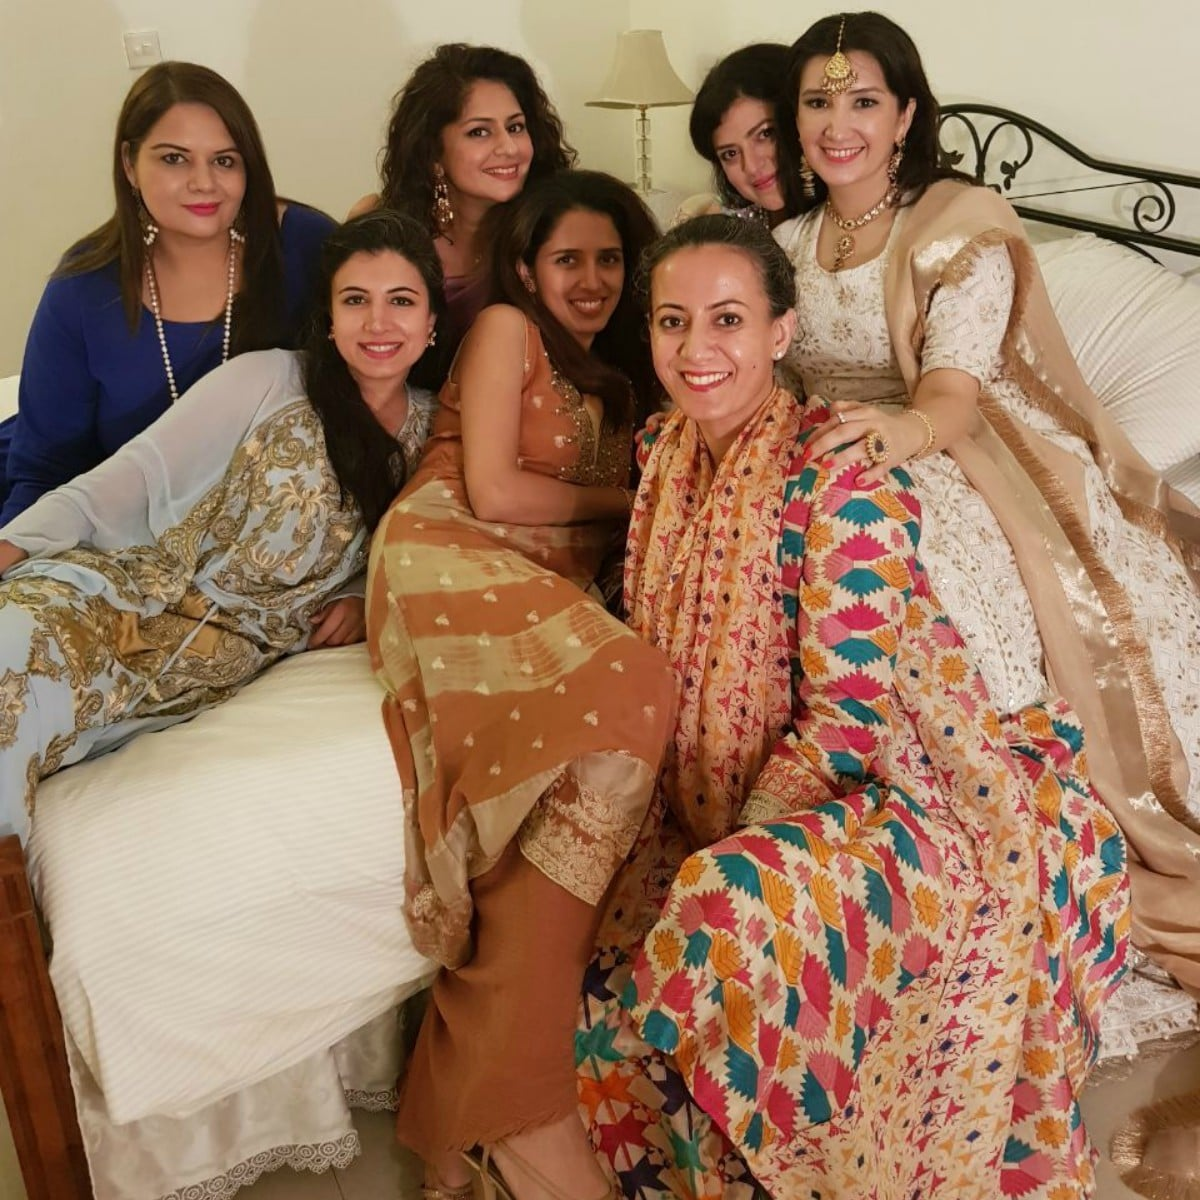 Zeb with her girl gang on her big day